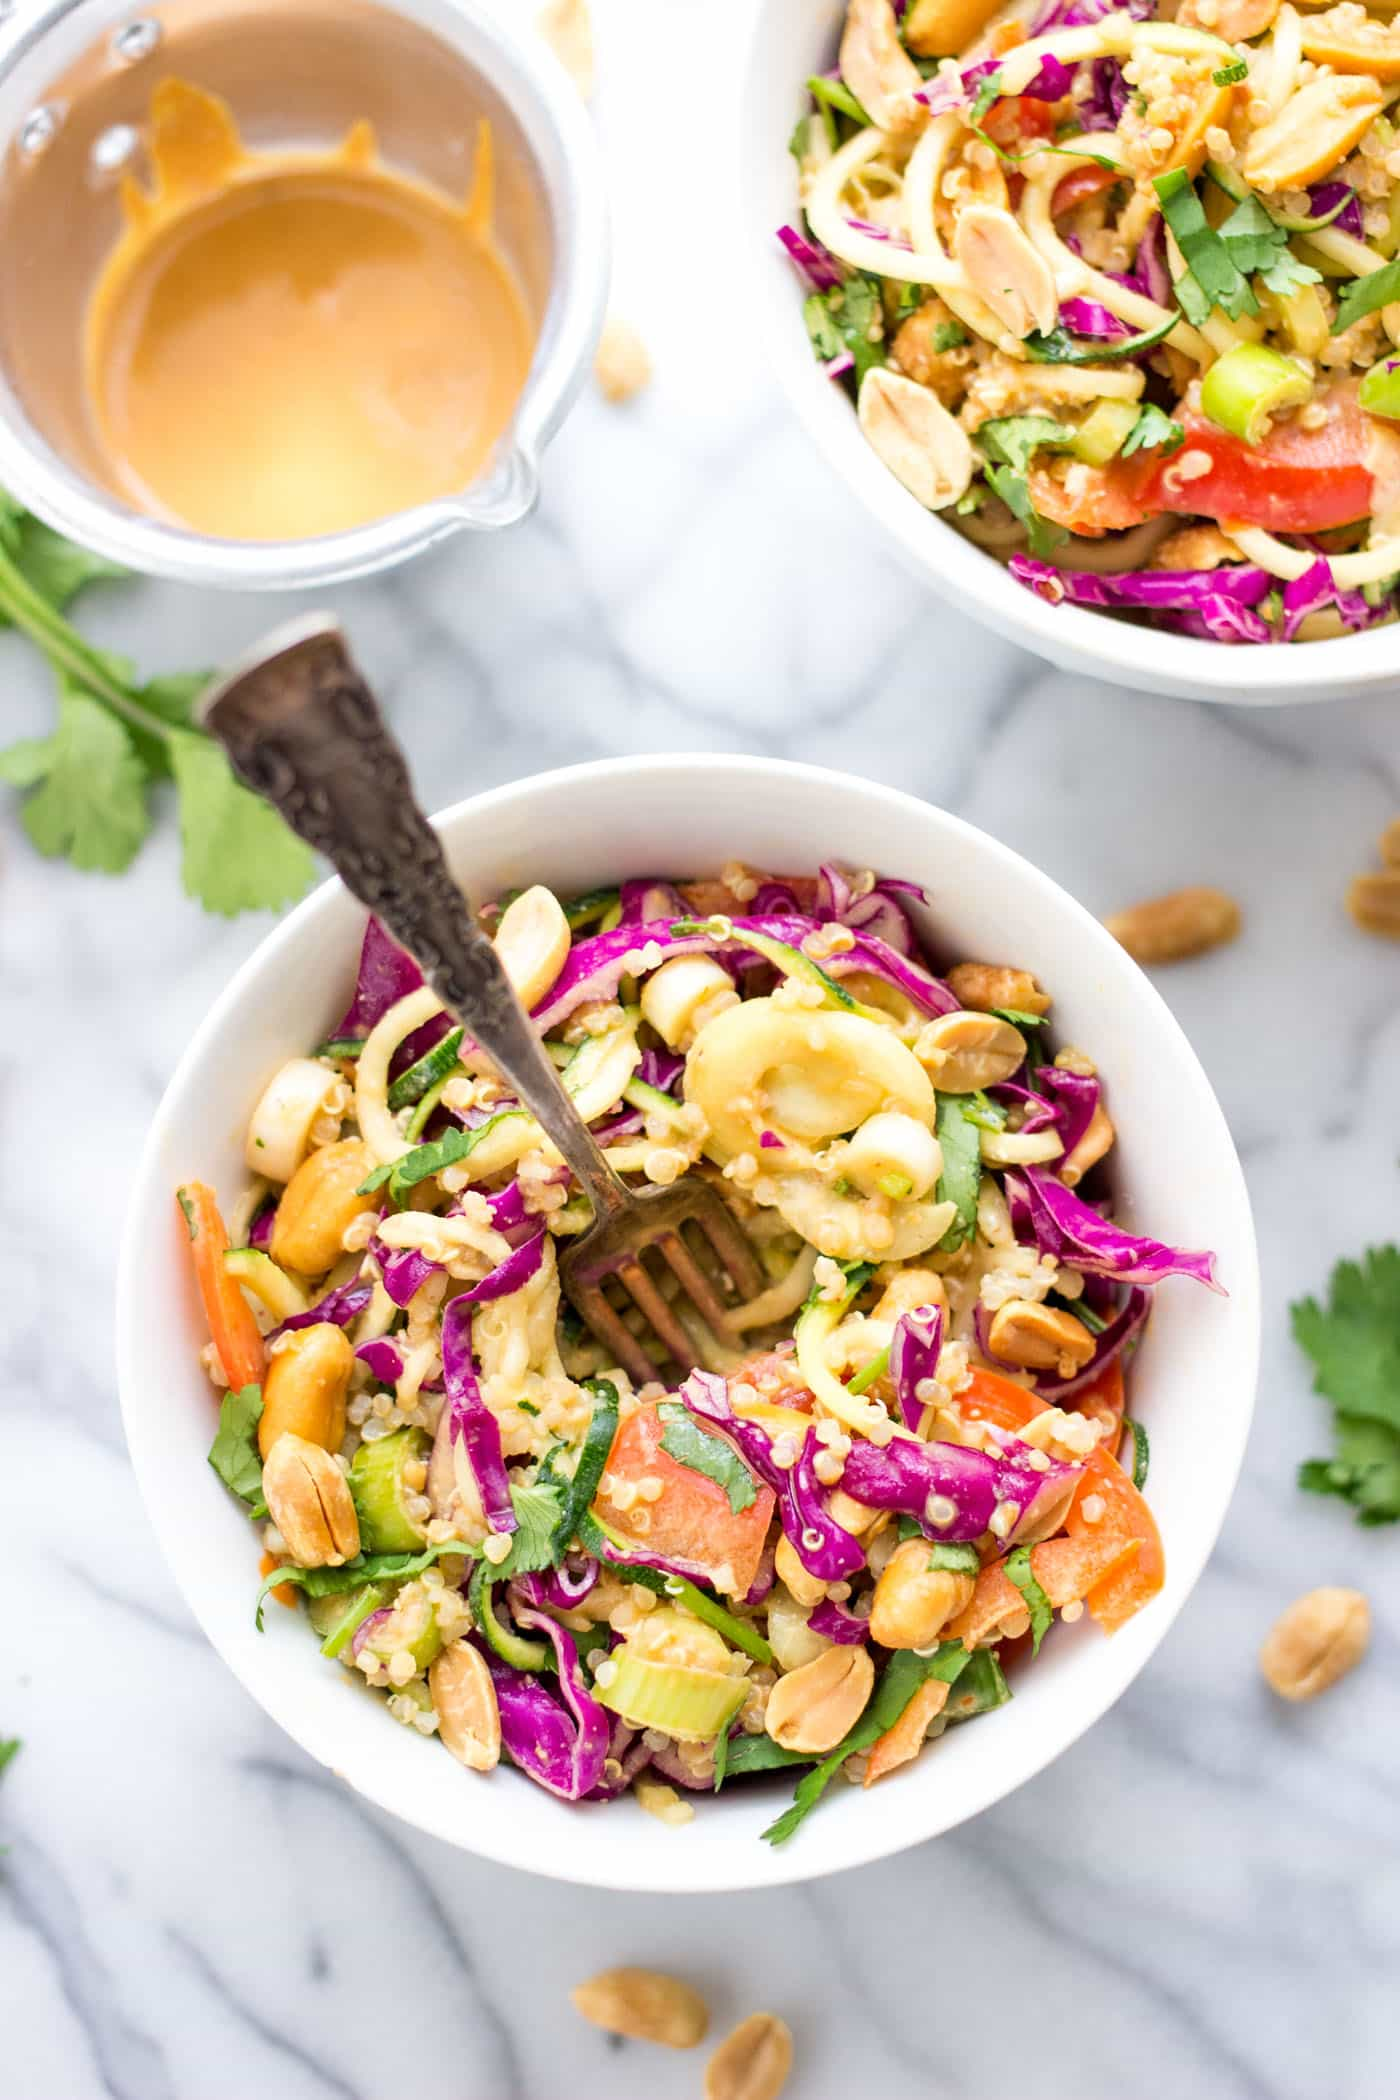 Healthy Pad Thai Zucchini Noodle Salad with veggies, quinoa and a creamy peanut butter sauce. So simple and SO flavorful!